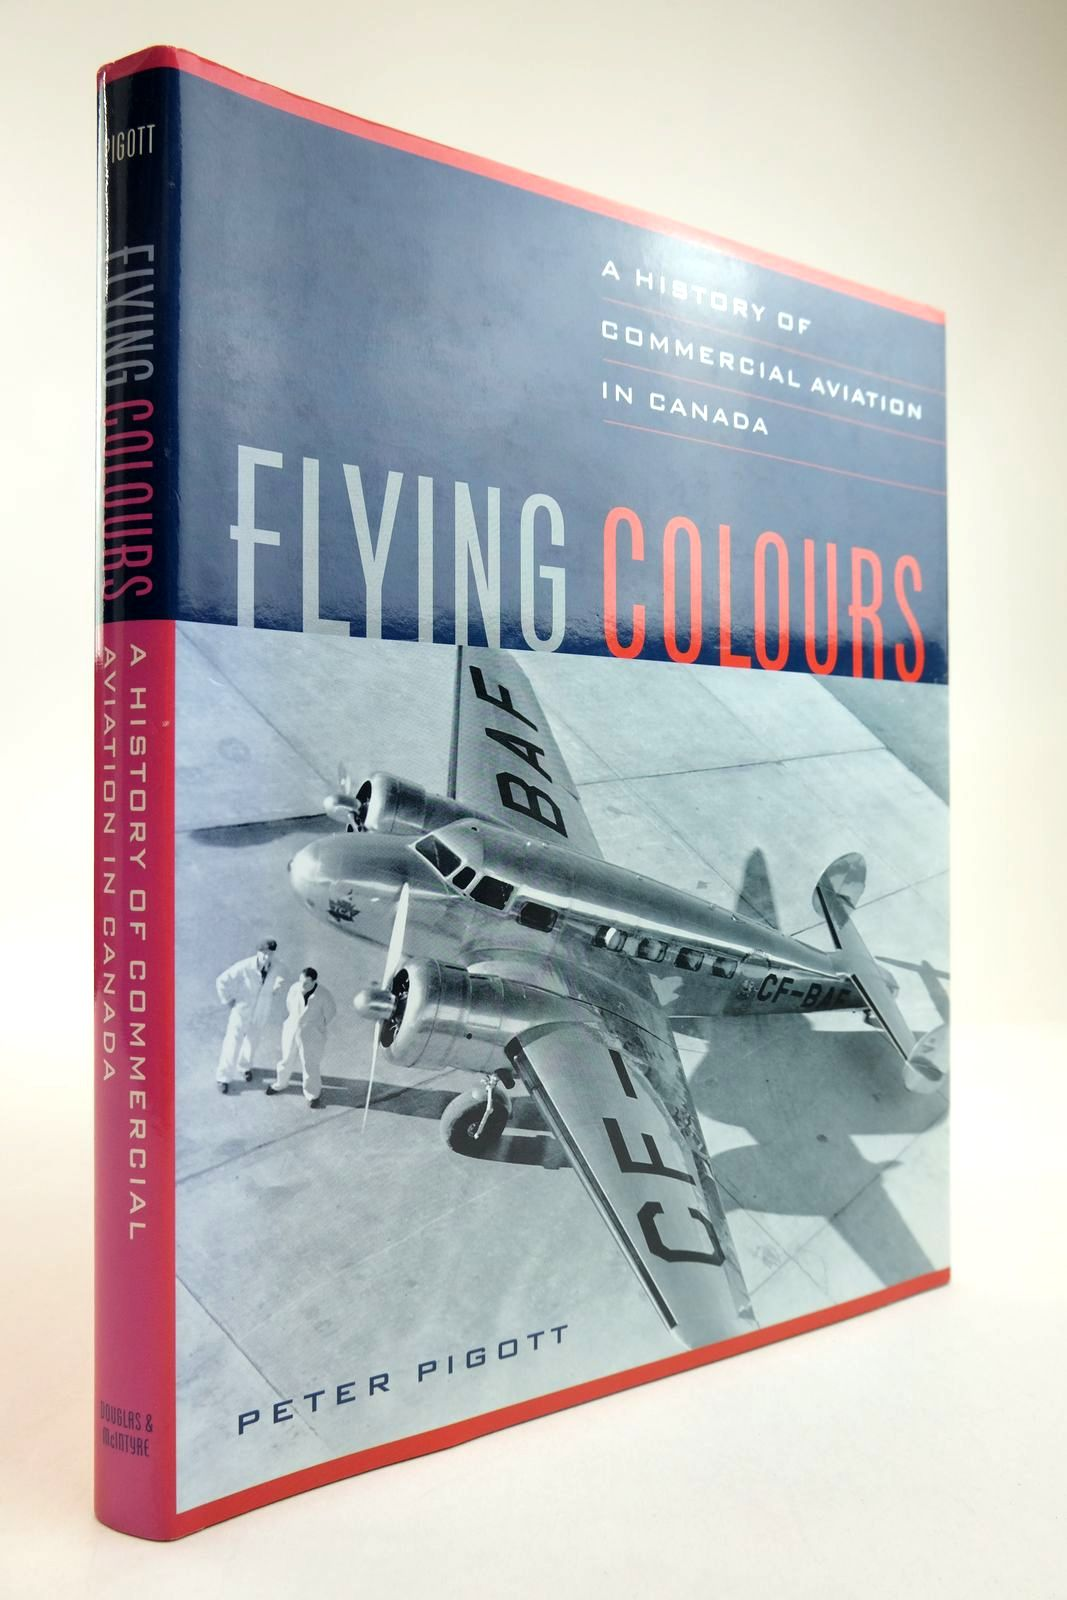 Photo of FLYING COLOURS: A HISTORY OF COMMERCIAL AVIATION IN CANADA- Stock Number: 2134235